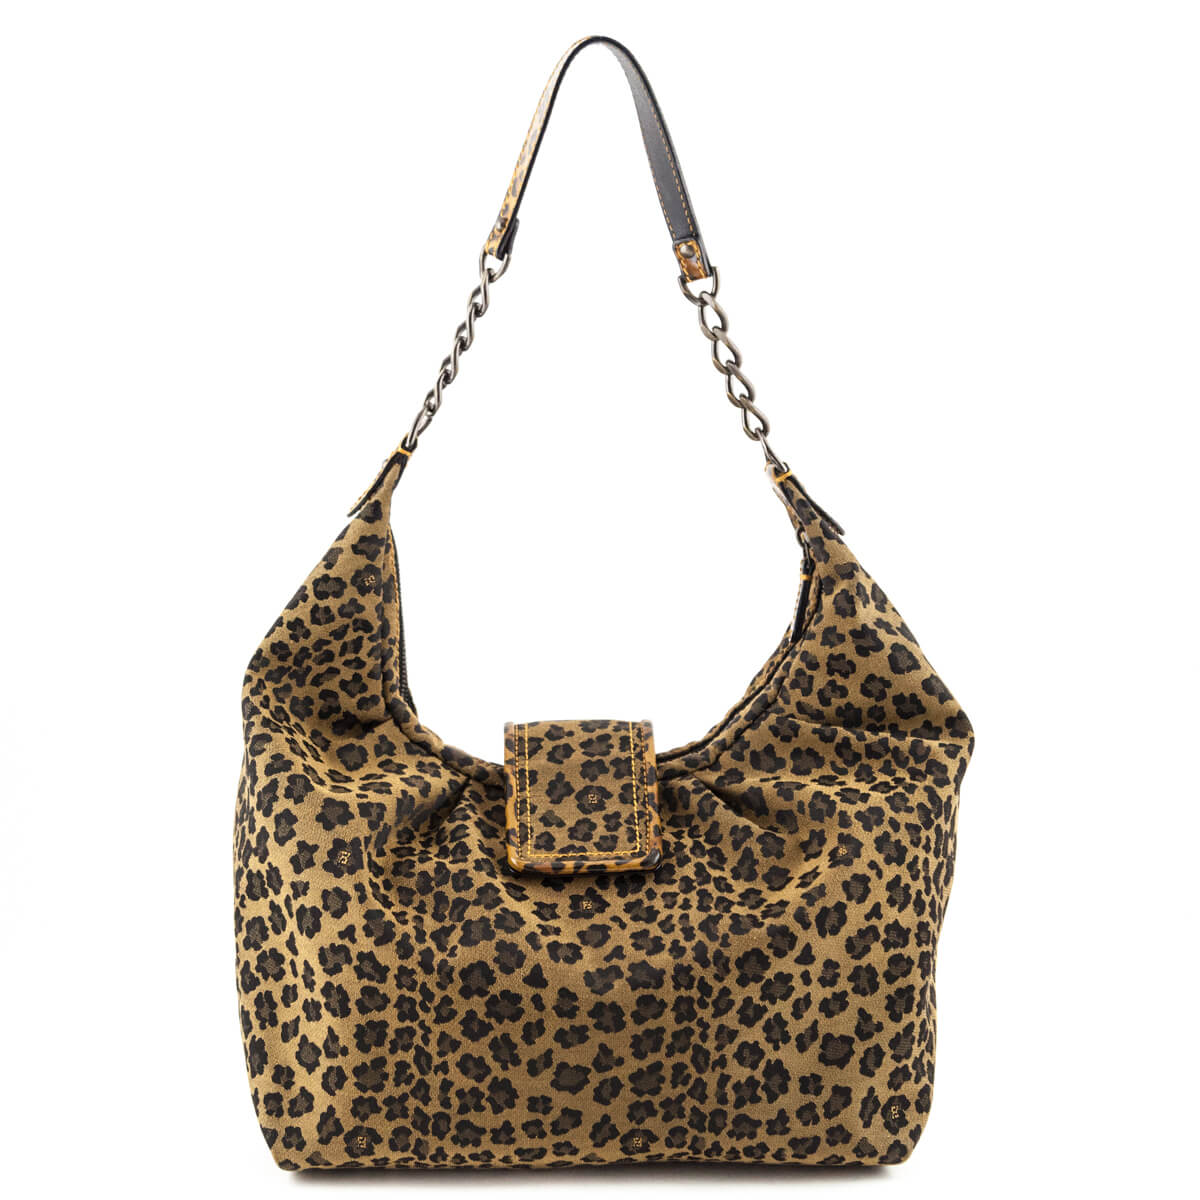 ... Fendi Leopard Canvas B. Hobo bag - LOVE that BAG - Preowned Authentic  Designer Handbags ... d58c581a7ebf2